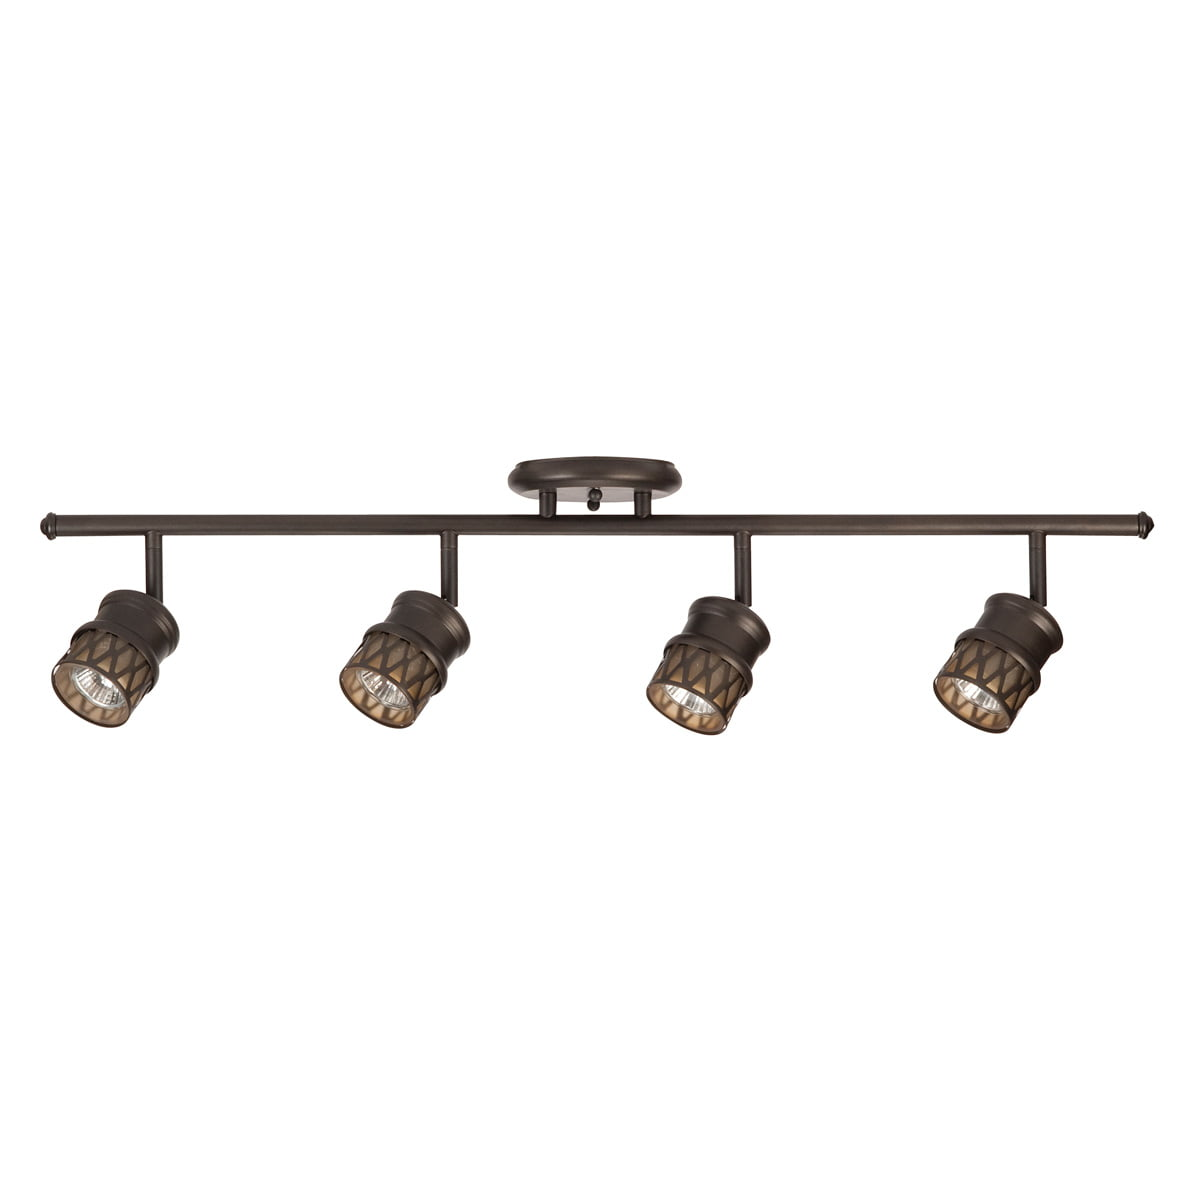 Globe Electric 50 Watt Norris 4-Light Oil Rubbed Bronze Track Lighting Kit, Bulbs Included by Globe Electric